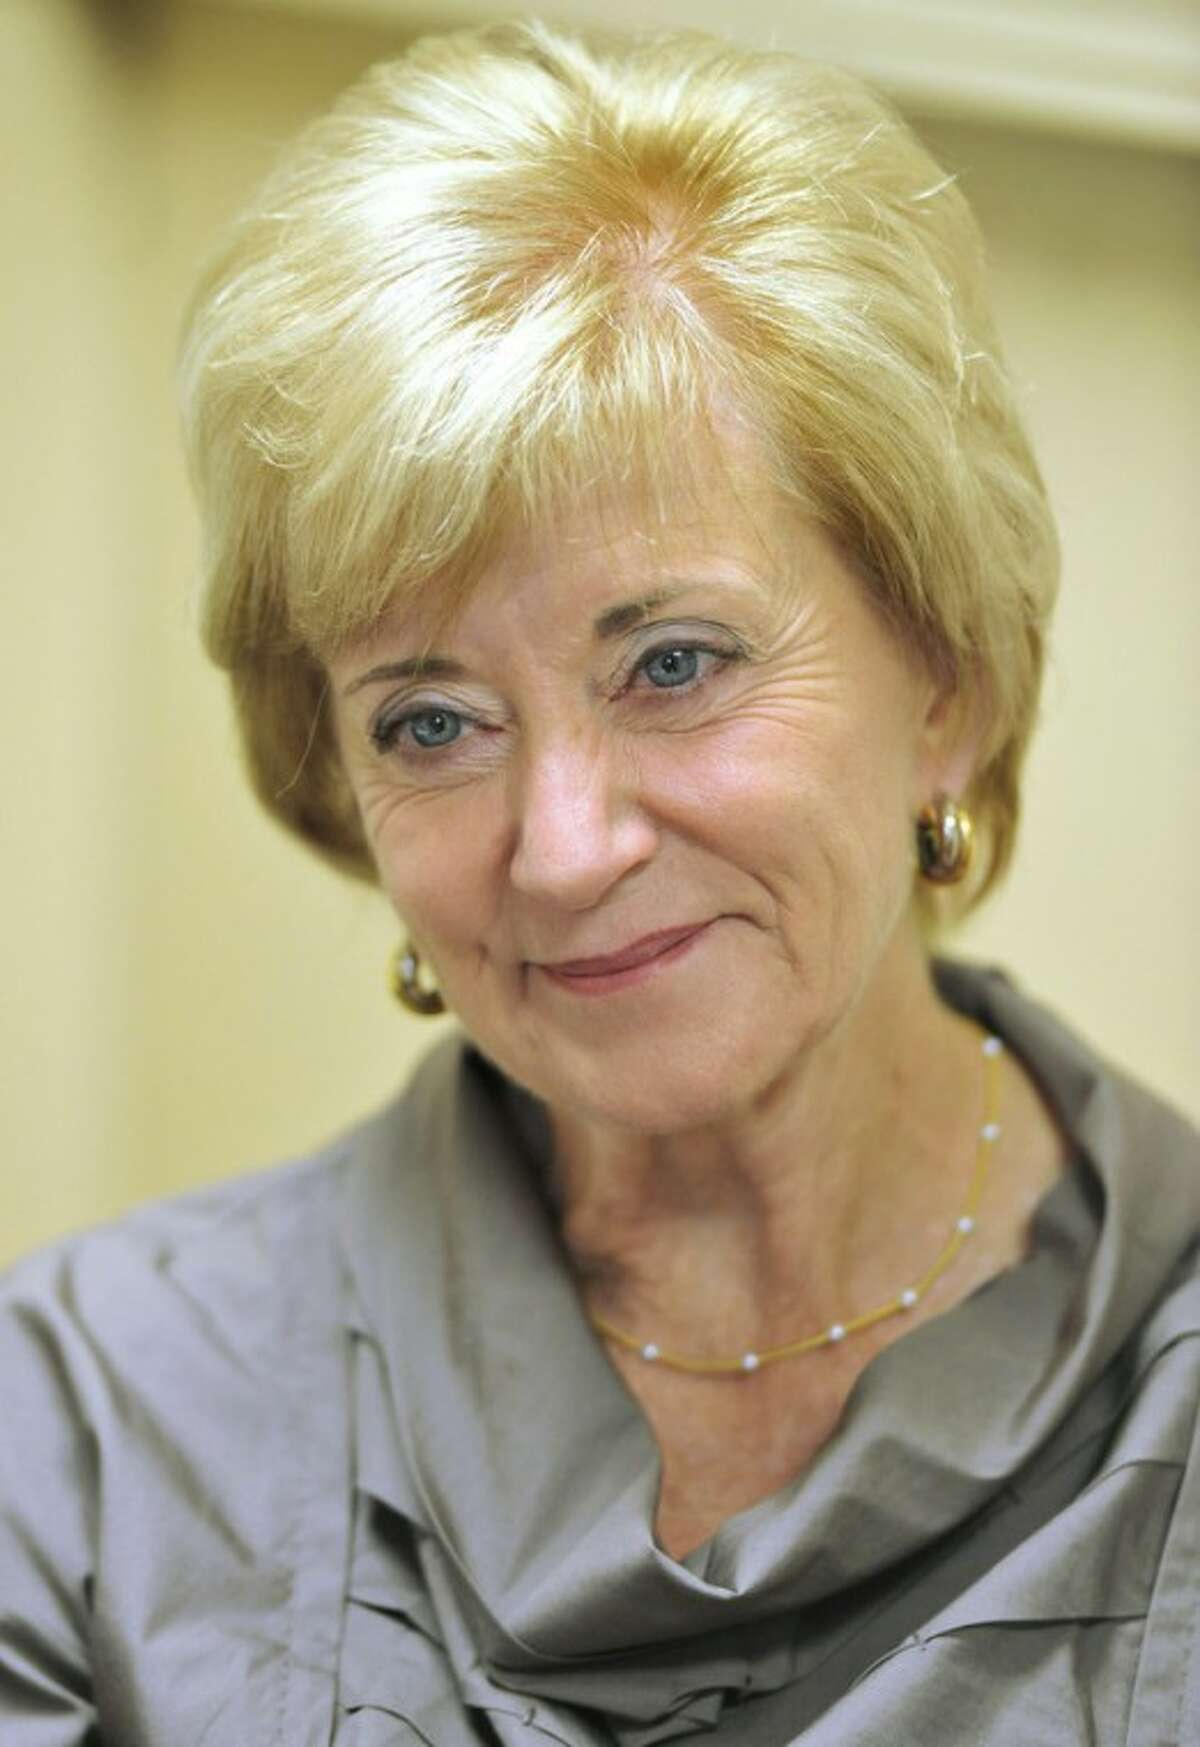 Republican candidate for U.S. Senate Linda McMahon smiles during a visit to the Naugatuck Senior center people in Naugatuck, Conn., Tuesday, Sept. 18, 2012. (AP Photo/Jessica Hill)